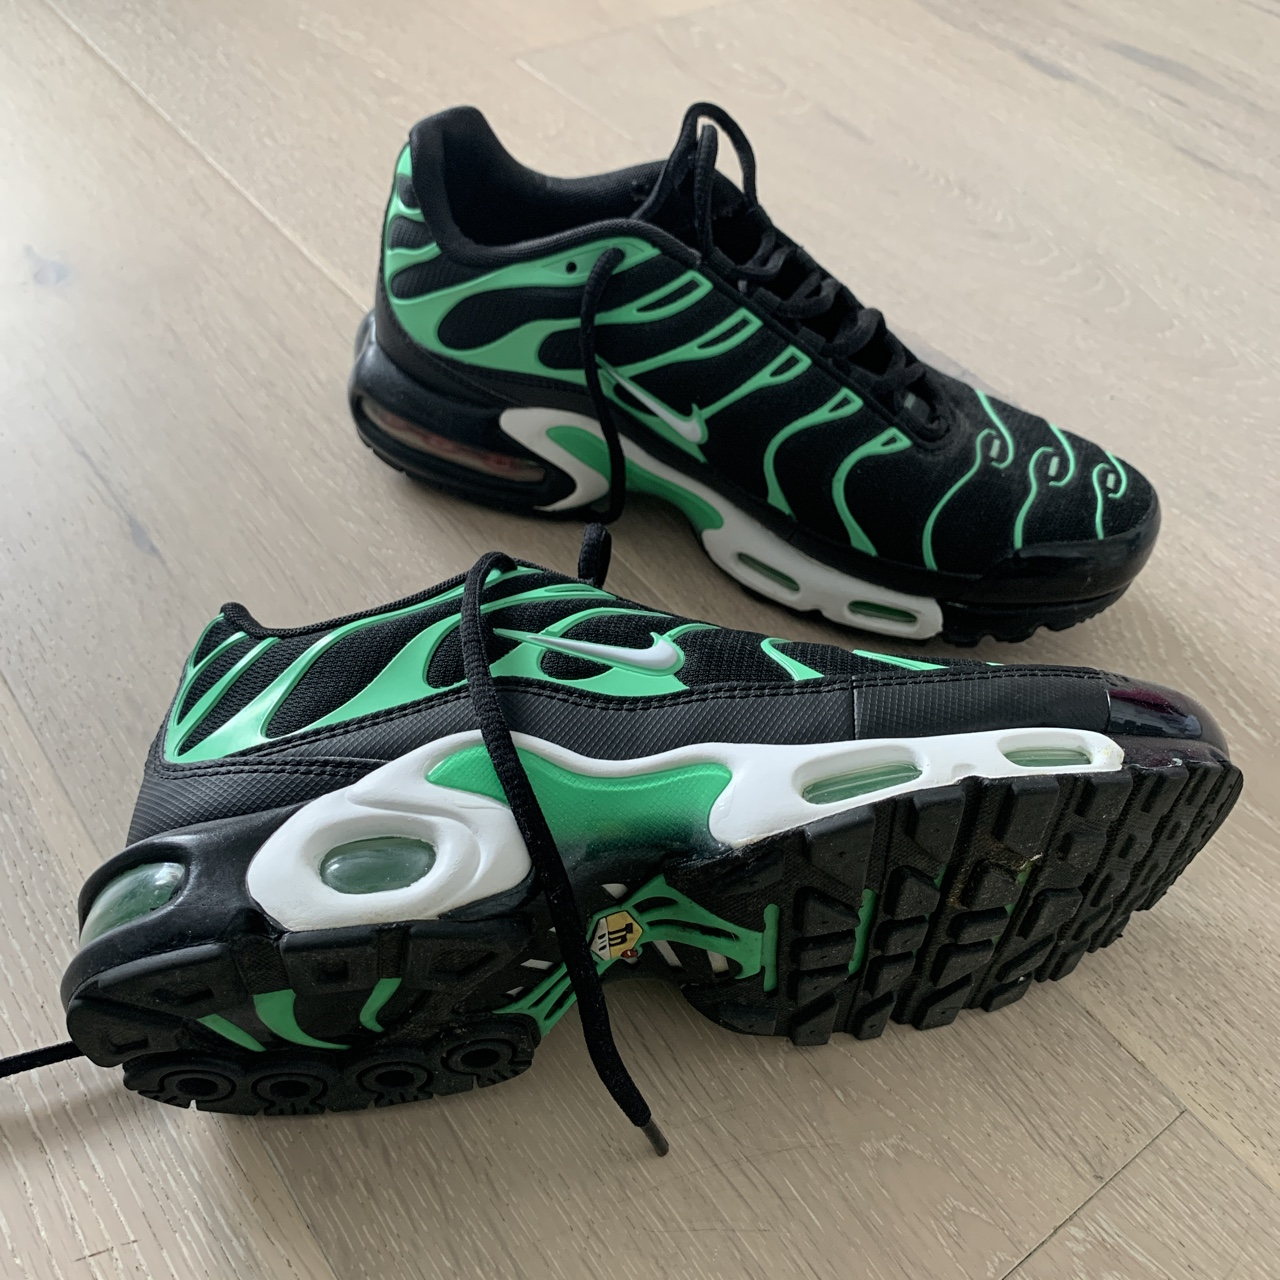 newest collection ff965 9cb60 DONT BUY - SAVED FOR SOMEONE Black & green Nike tns... - Depop